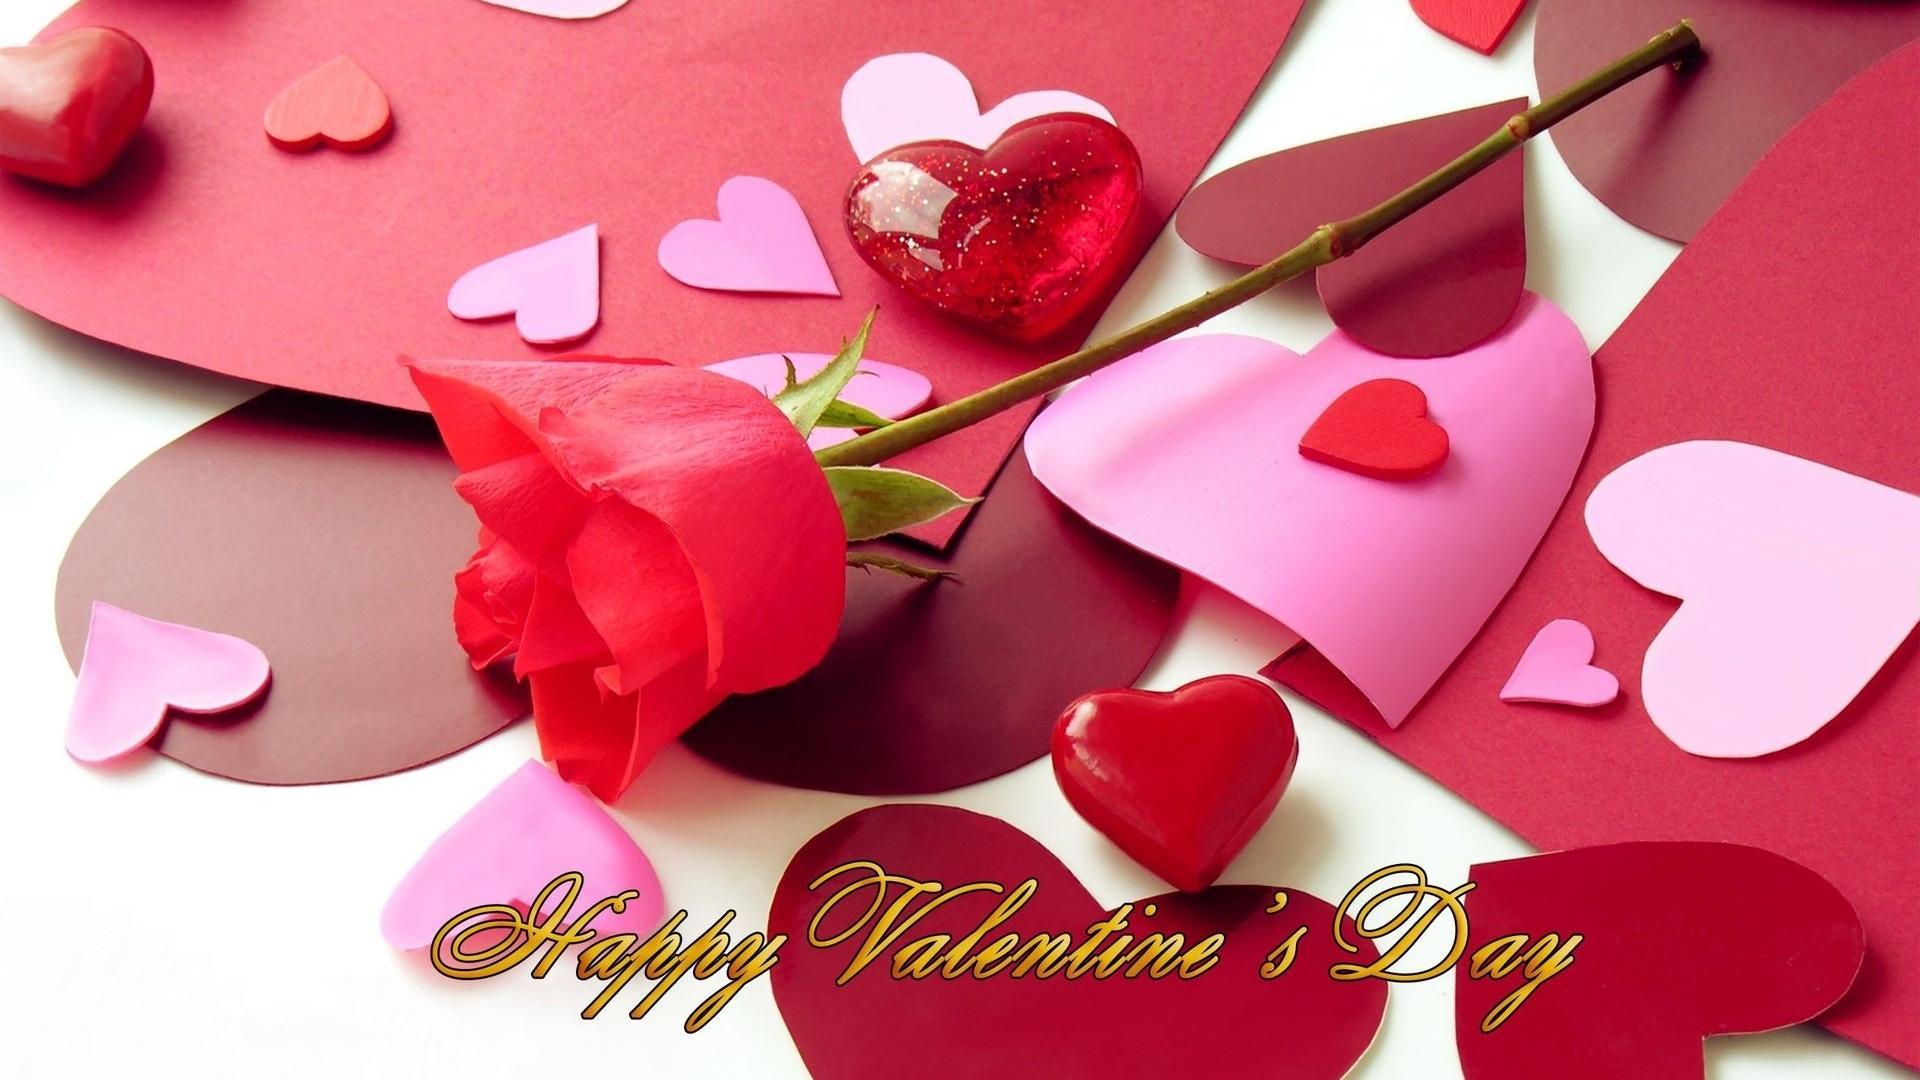 Happy Valentines Day Flower HD Wallpaper of Love   hdwallpaper2013com 1920x1080